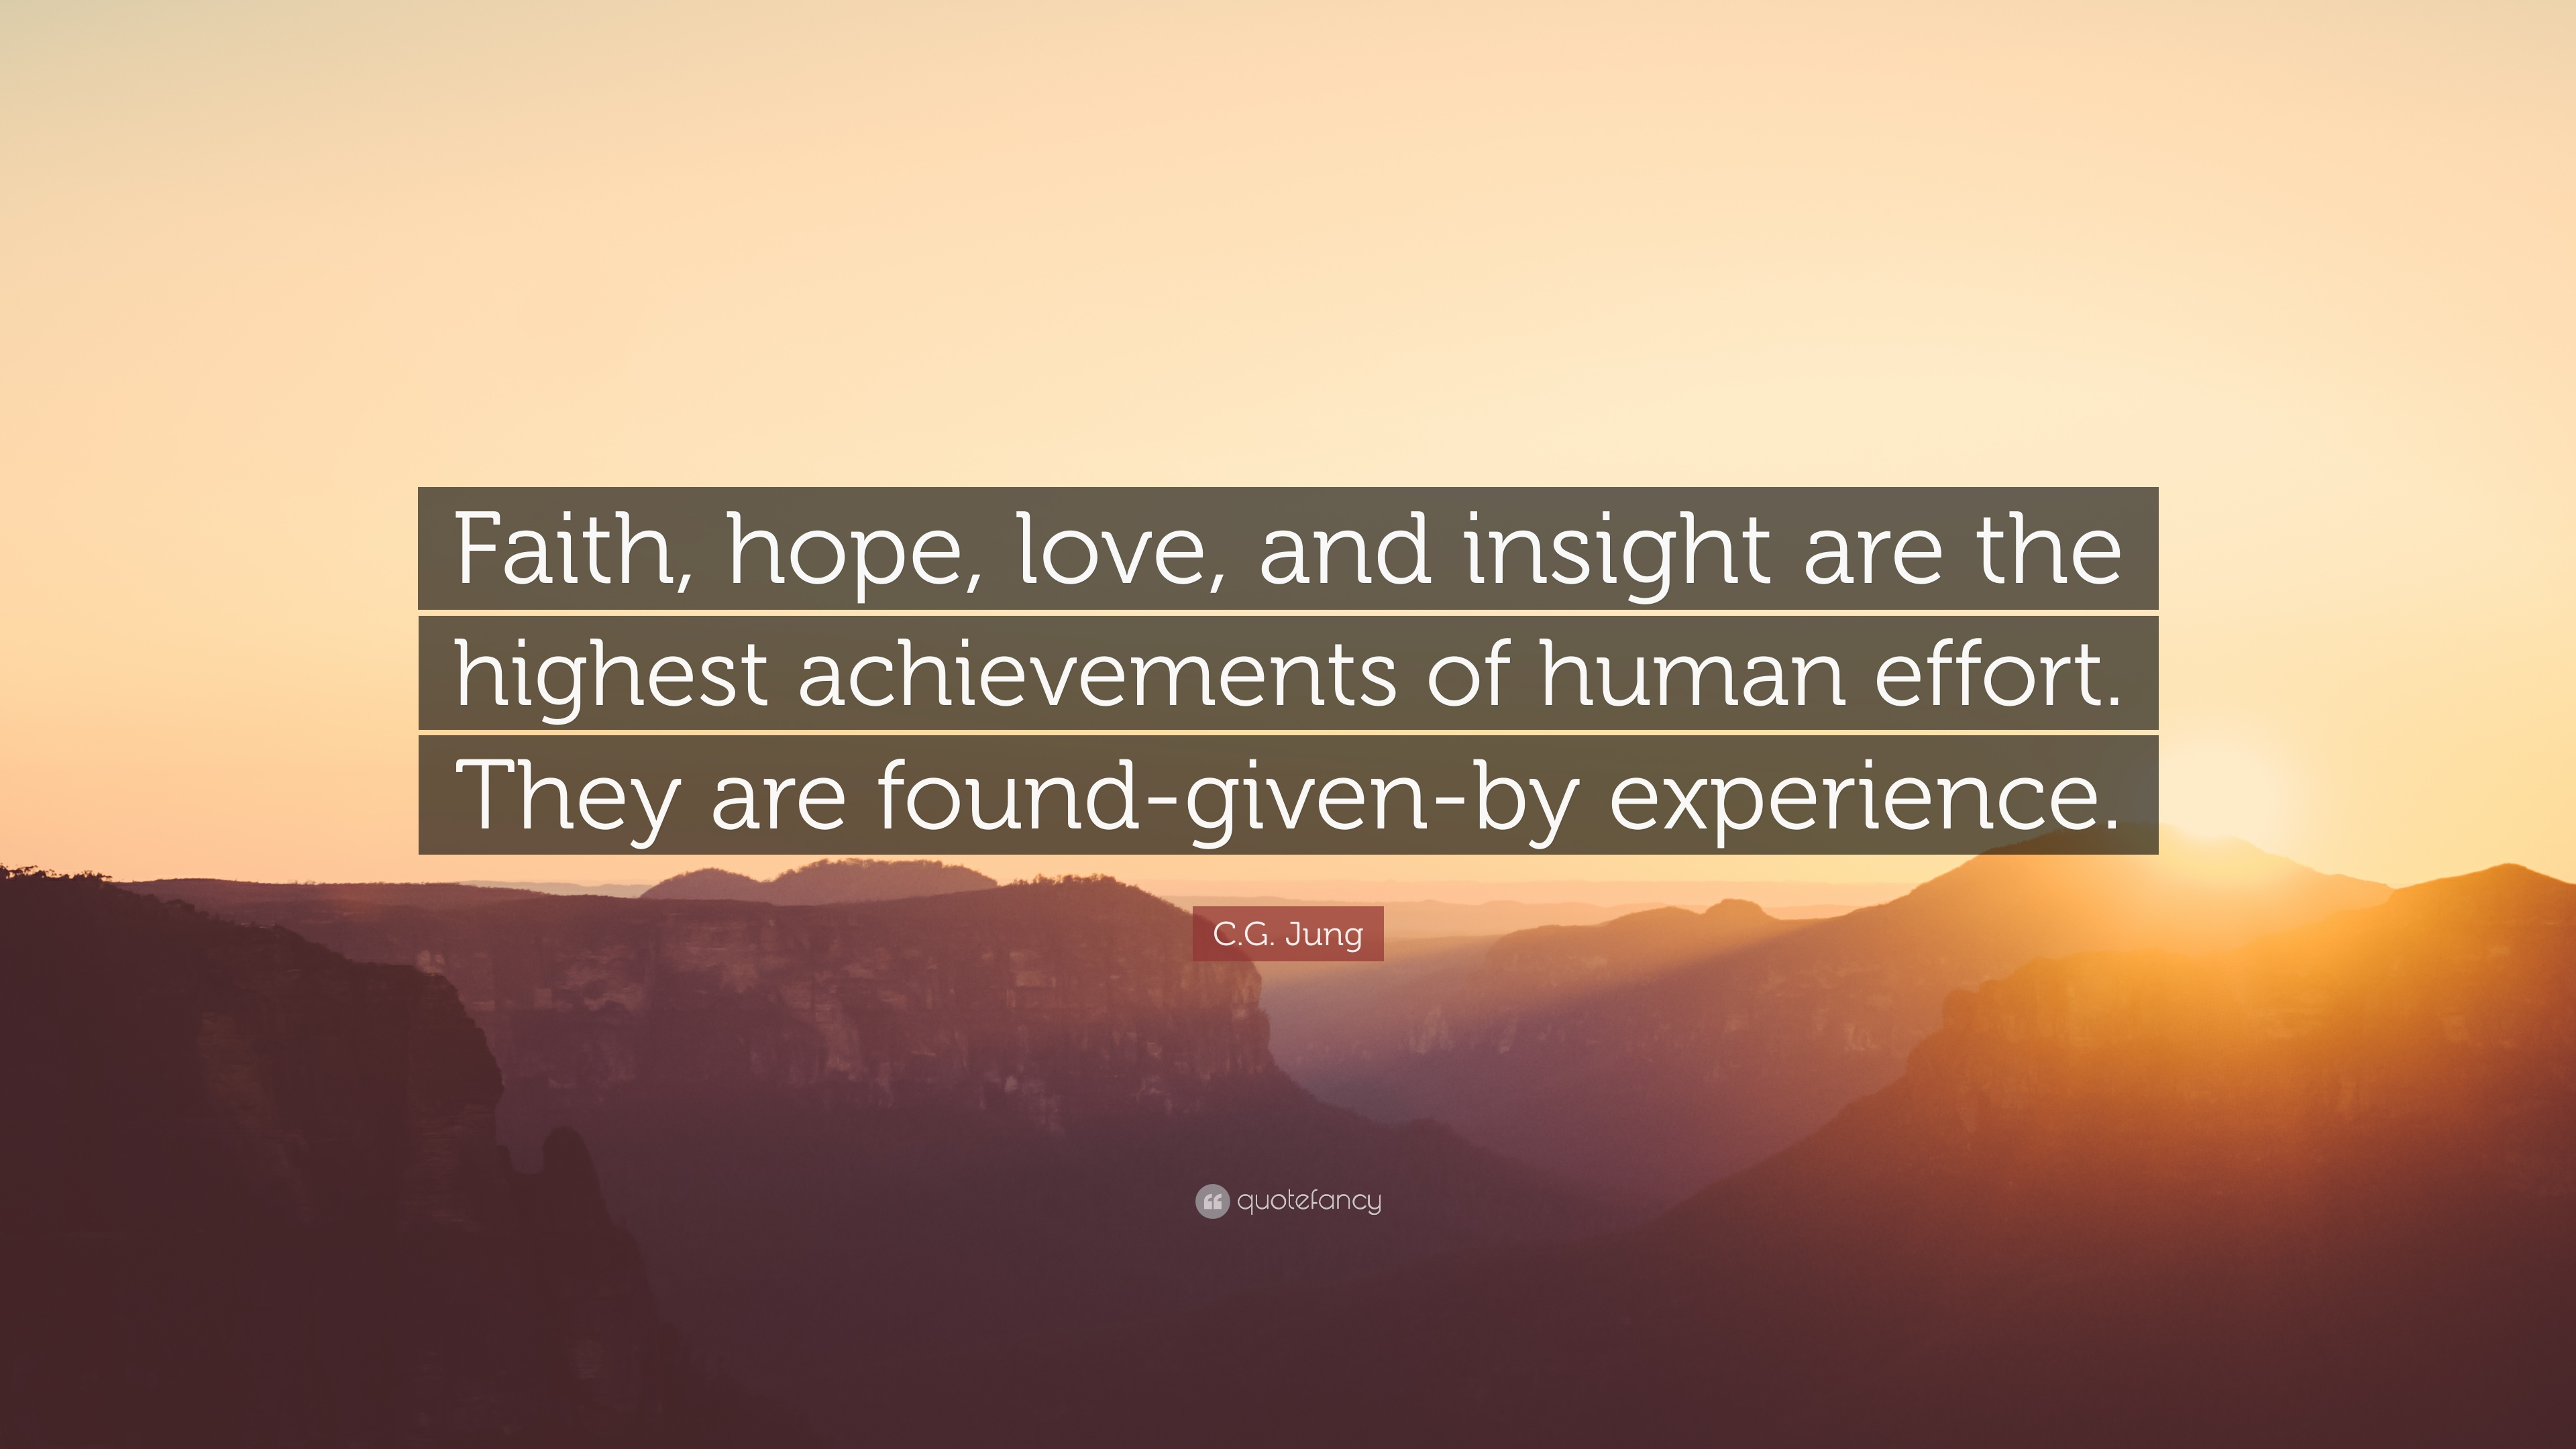 Image of: Moving Cg Jung Quote faith Hope Love And Insight Are The Highest Quotefancy Cg Jung Quote faith Hope Love And Insight Are The Highest